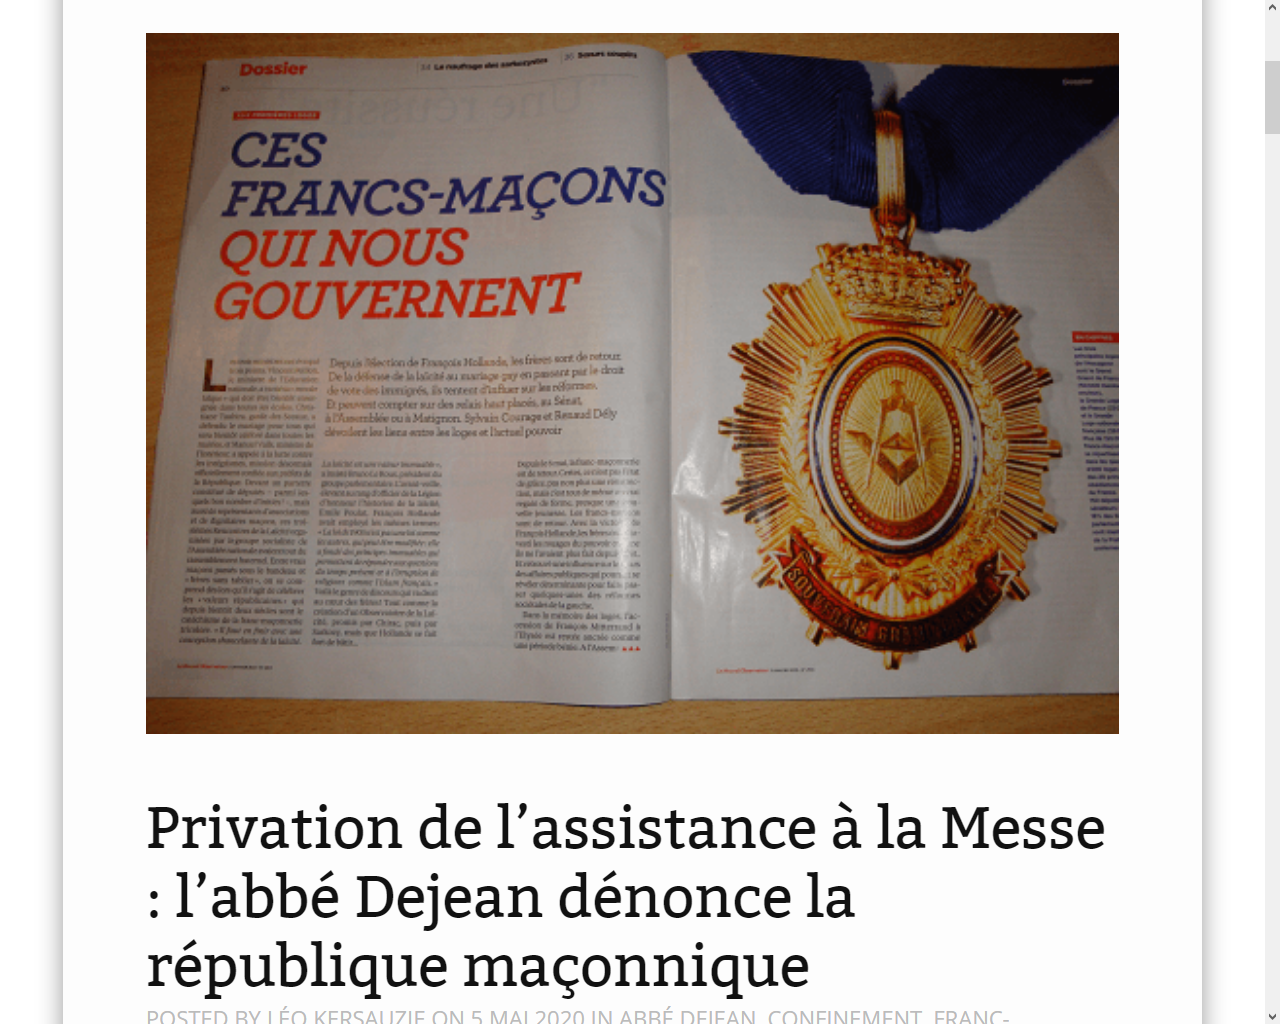 https://medias-catholique.info/privation-de-lassistance-a-la-messe-labbe-dejean-denonce-la-republique-maconnique/36183